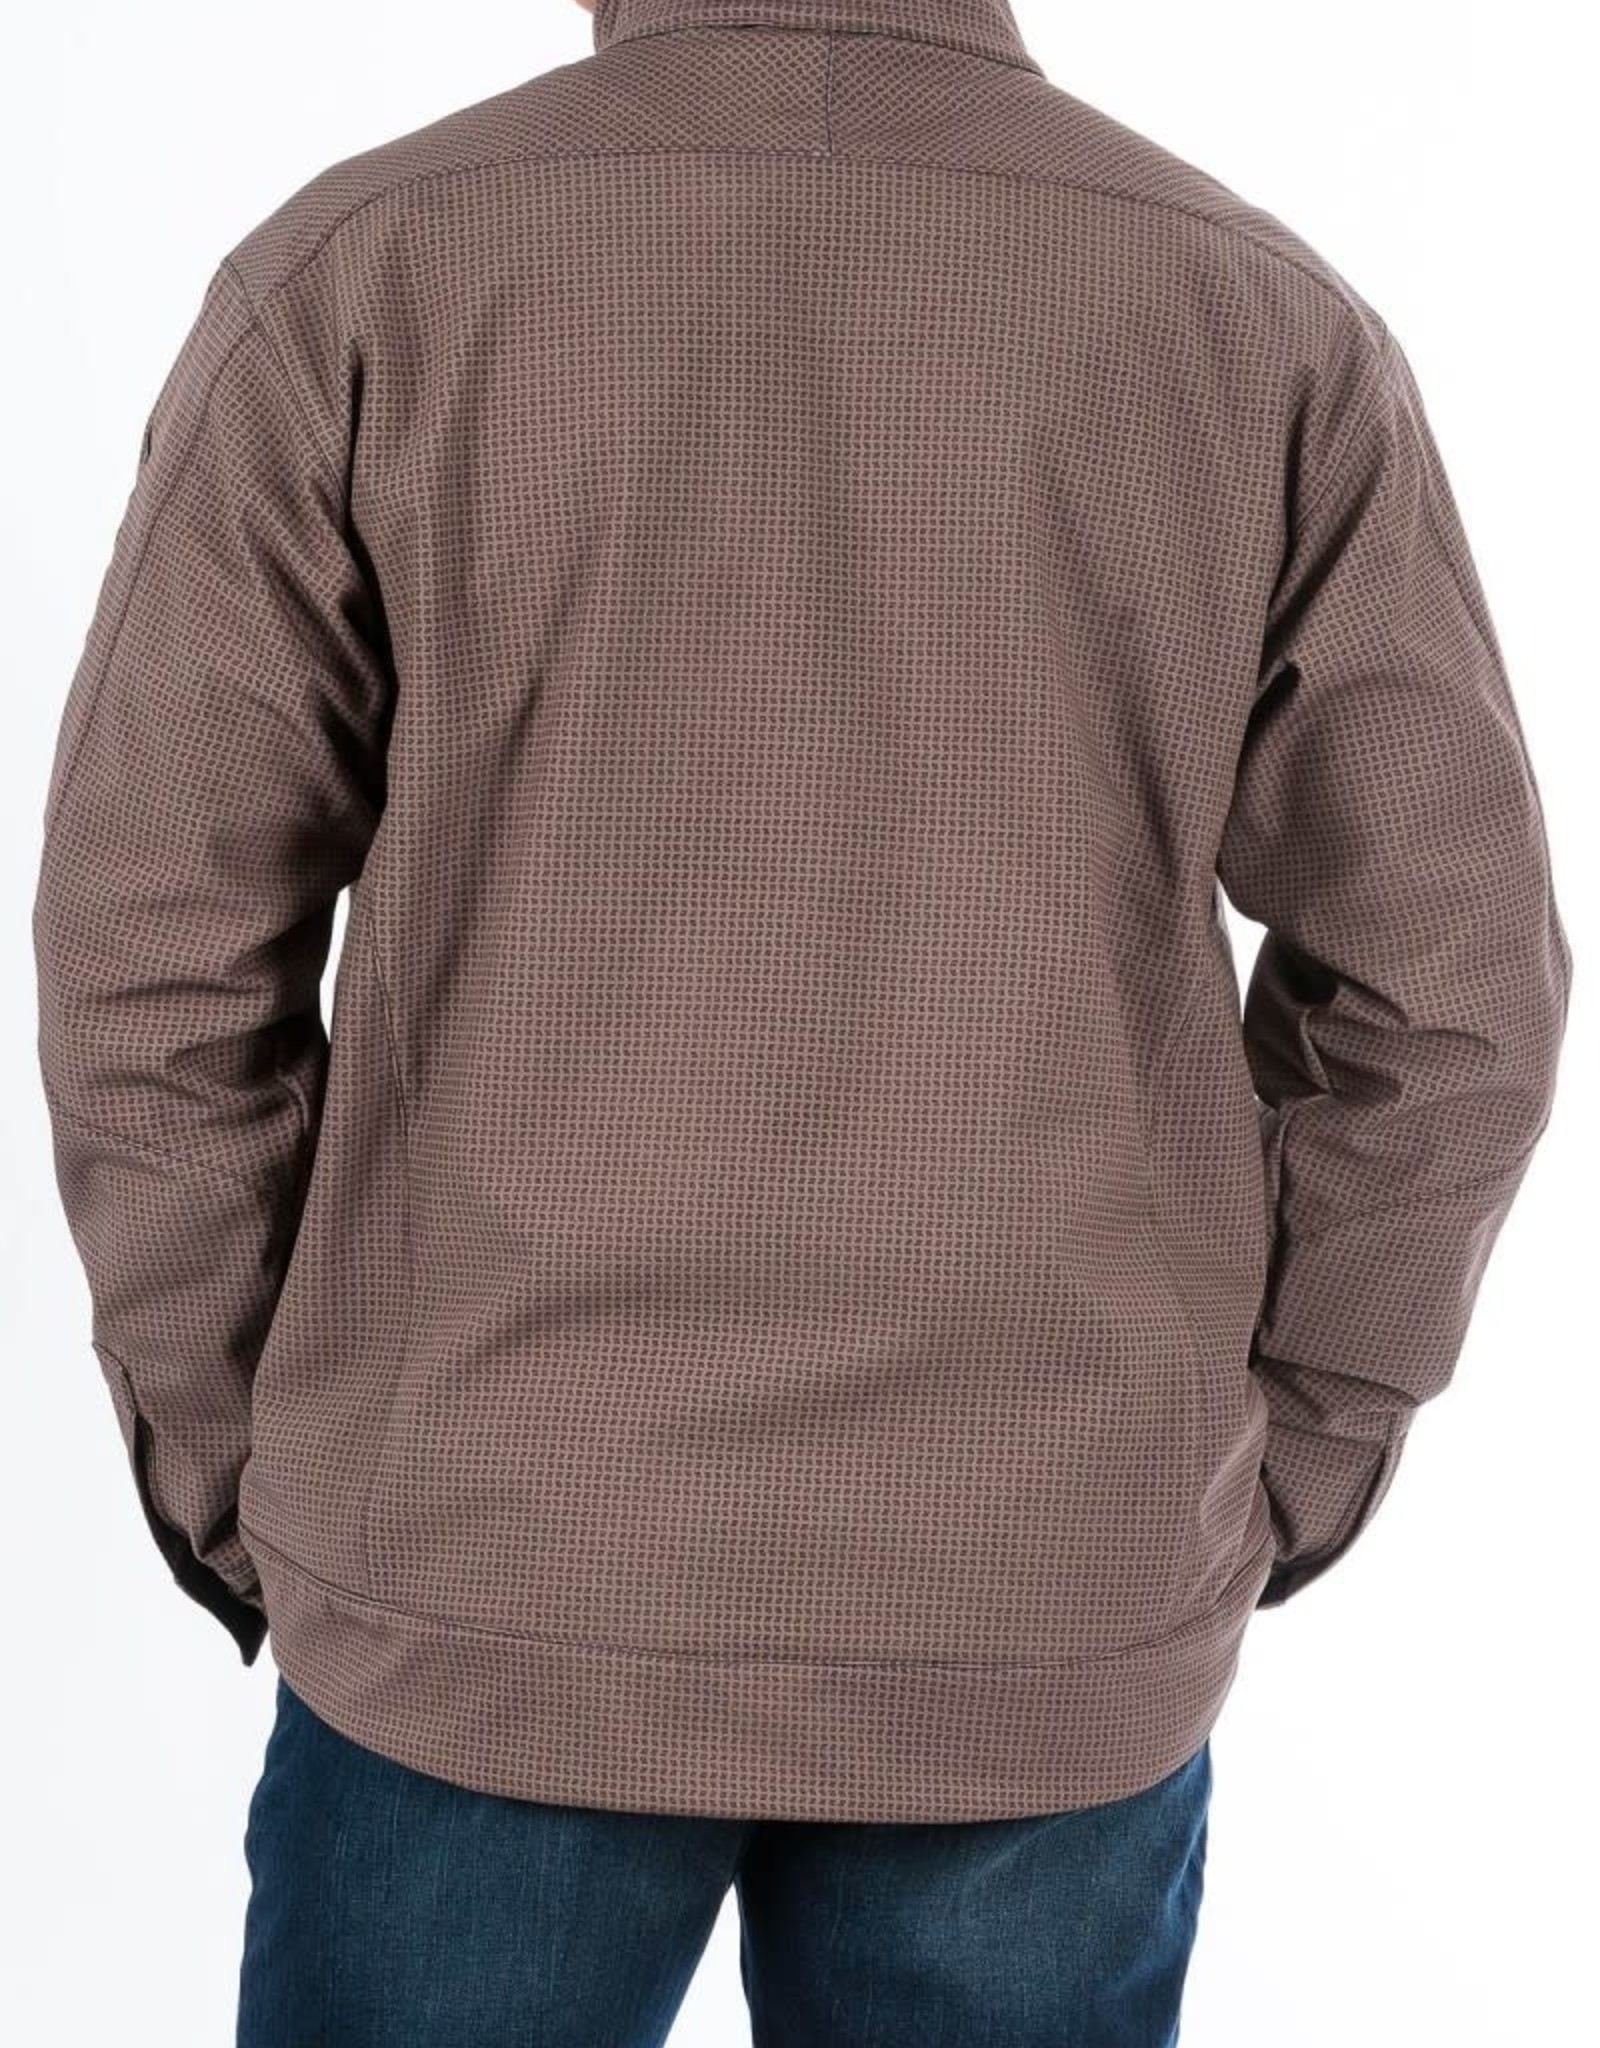 Cinch Mens Cinch Bonded Concealed Carry Stone Tan Black Jacket